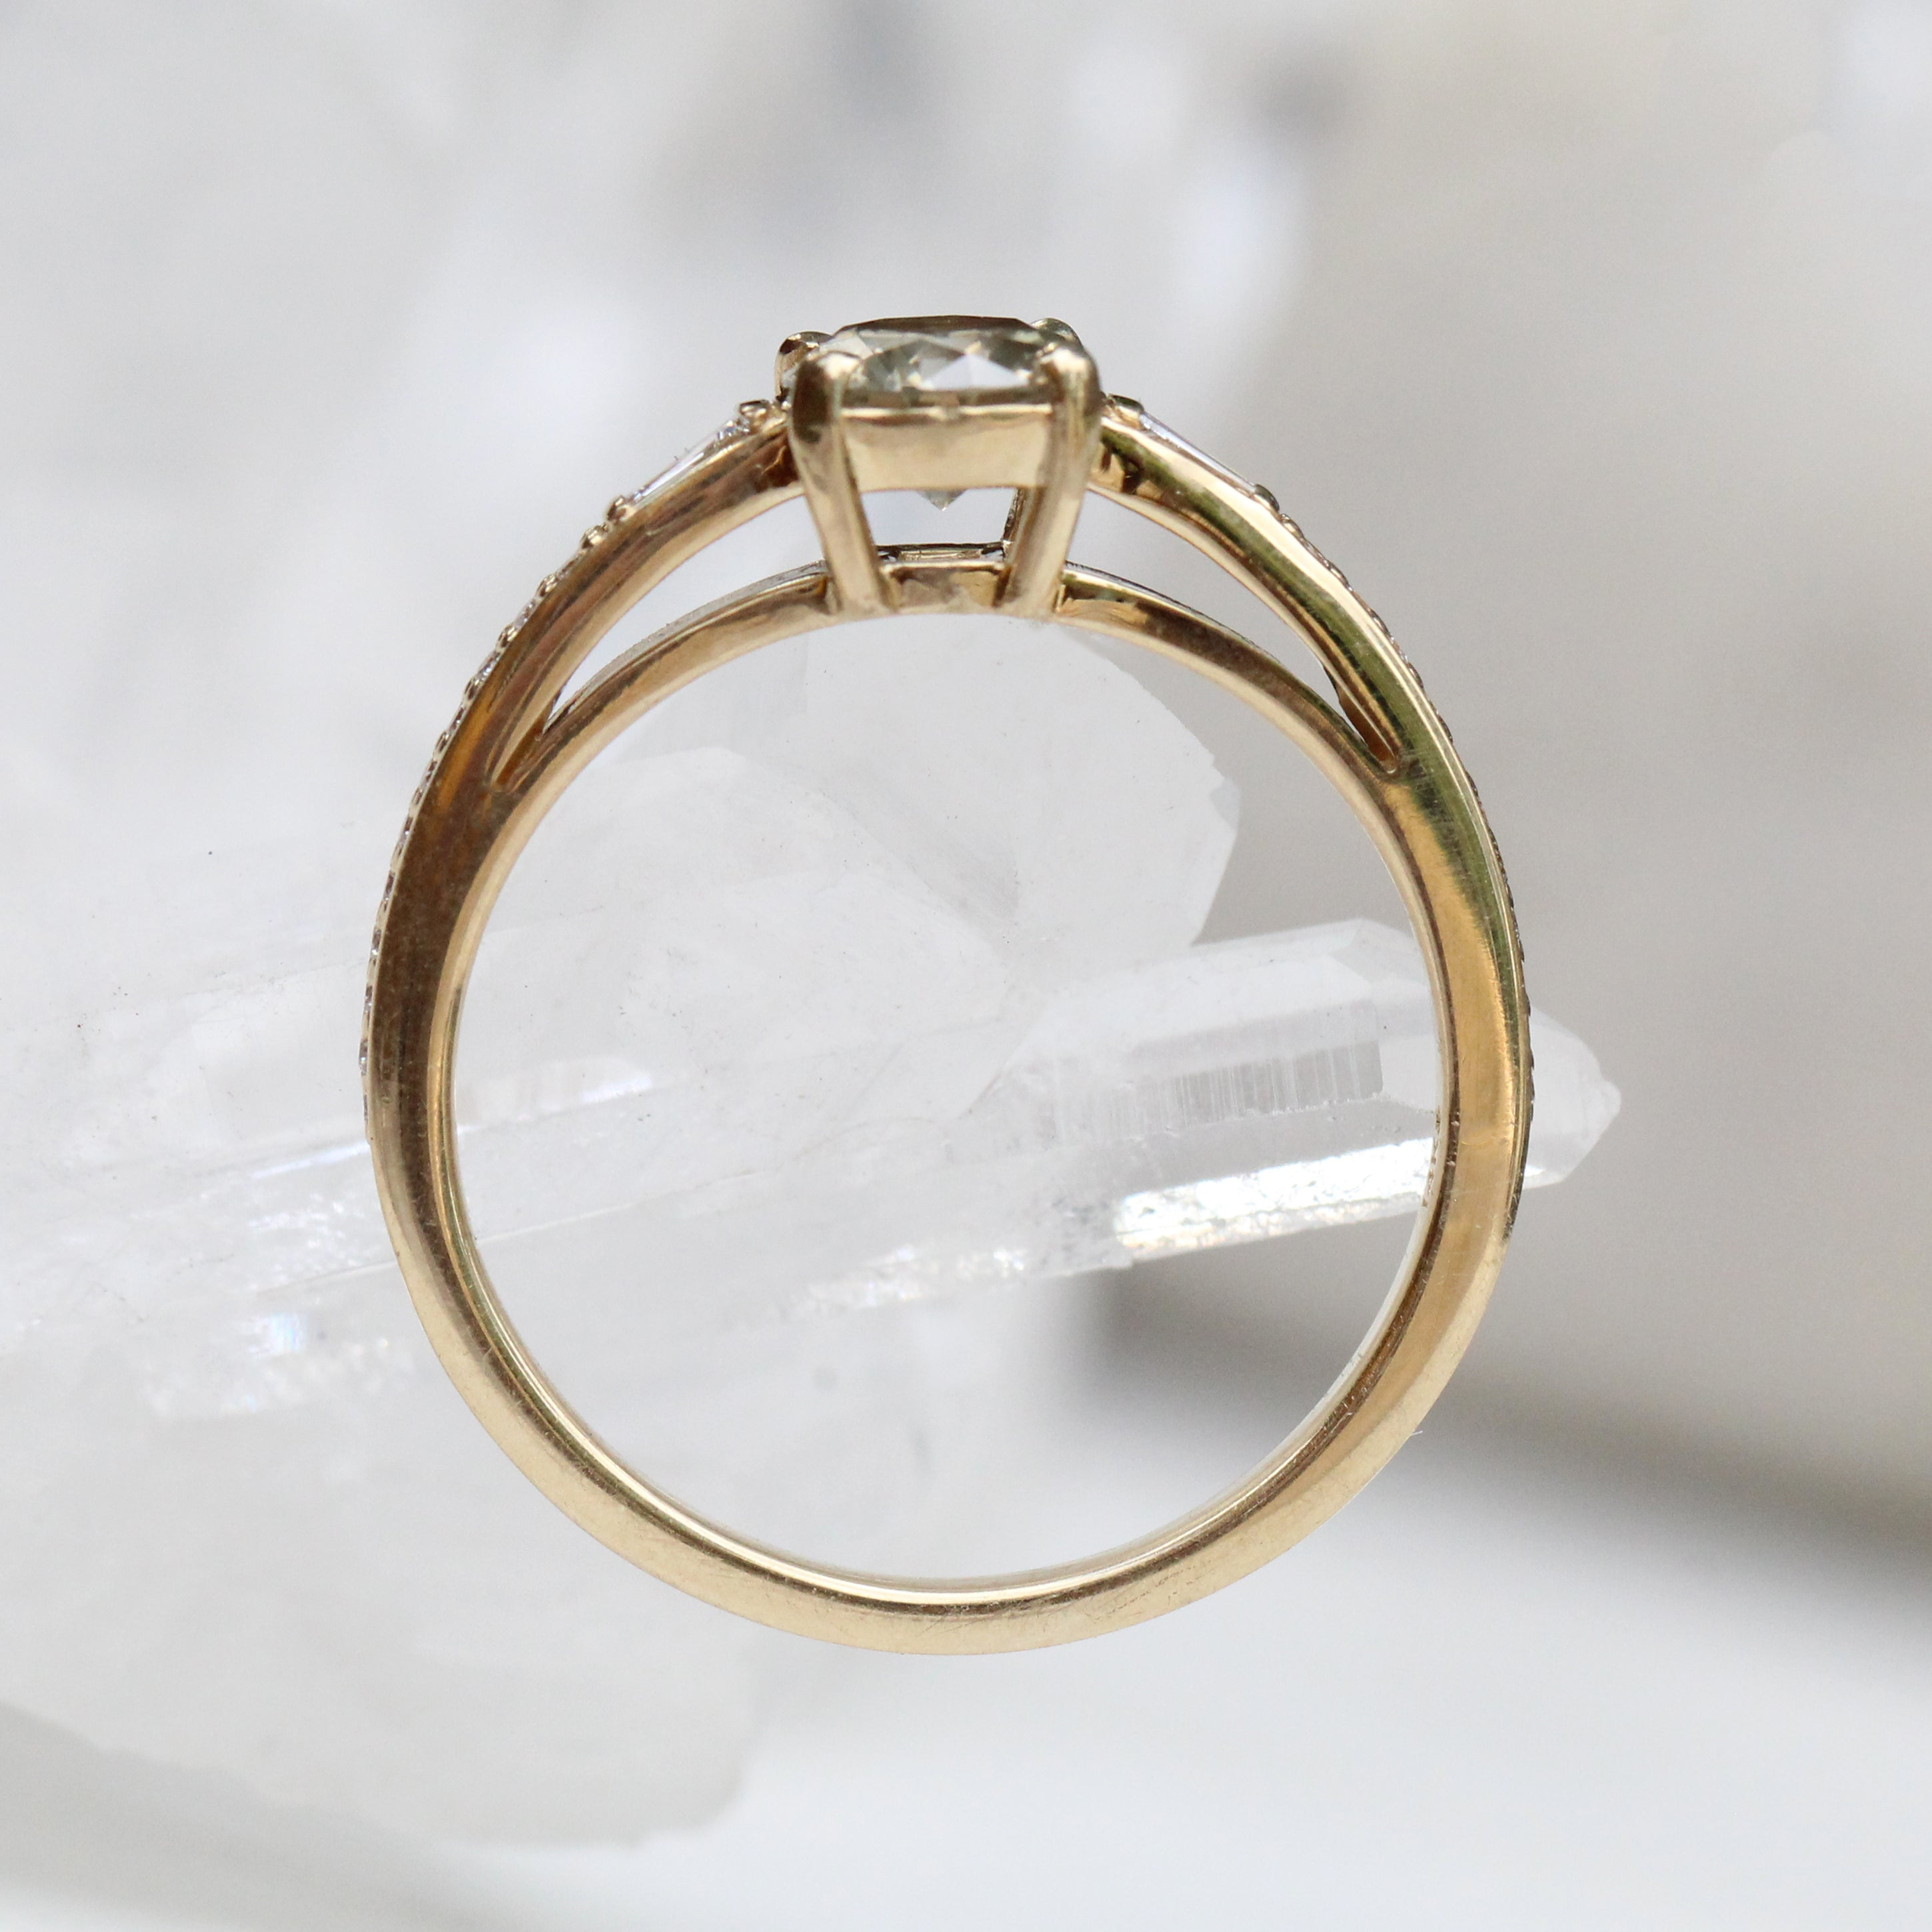 Beckett Ring with a Misty Champagne Diamond in a 14k Yellow Gold - Ready to Size and Ship - Midwinter Co. Alternative Bridal Rings and Modern Fine Jewelry